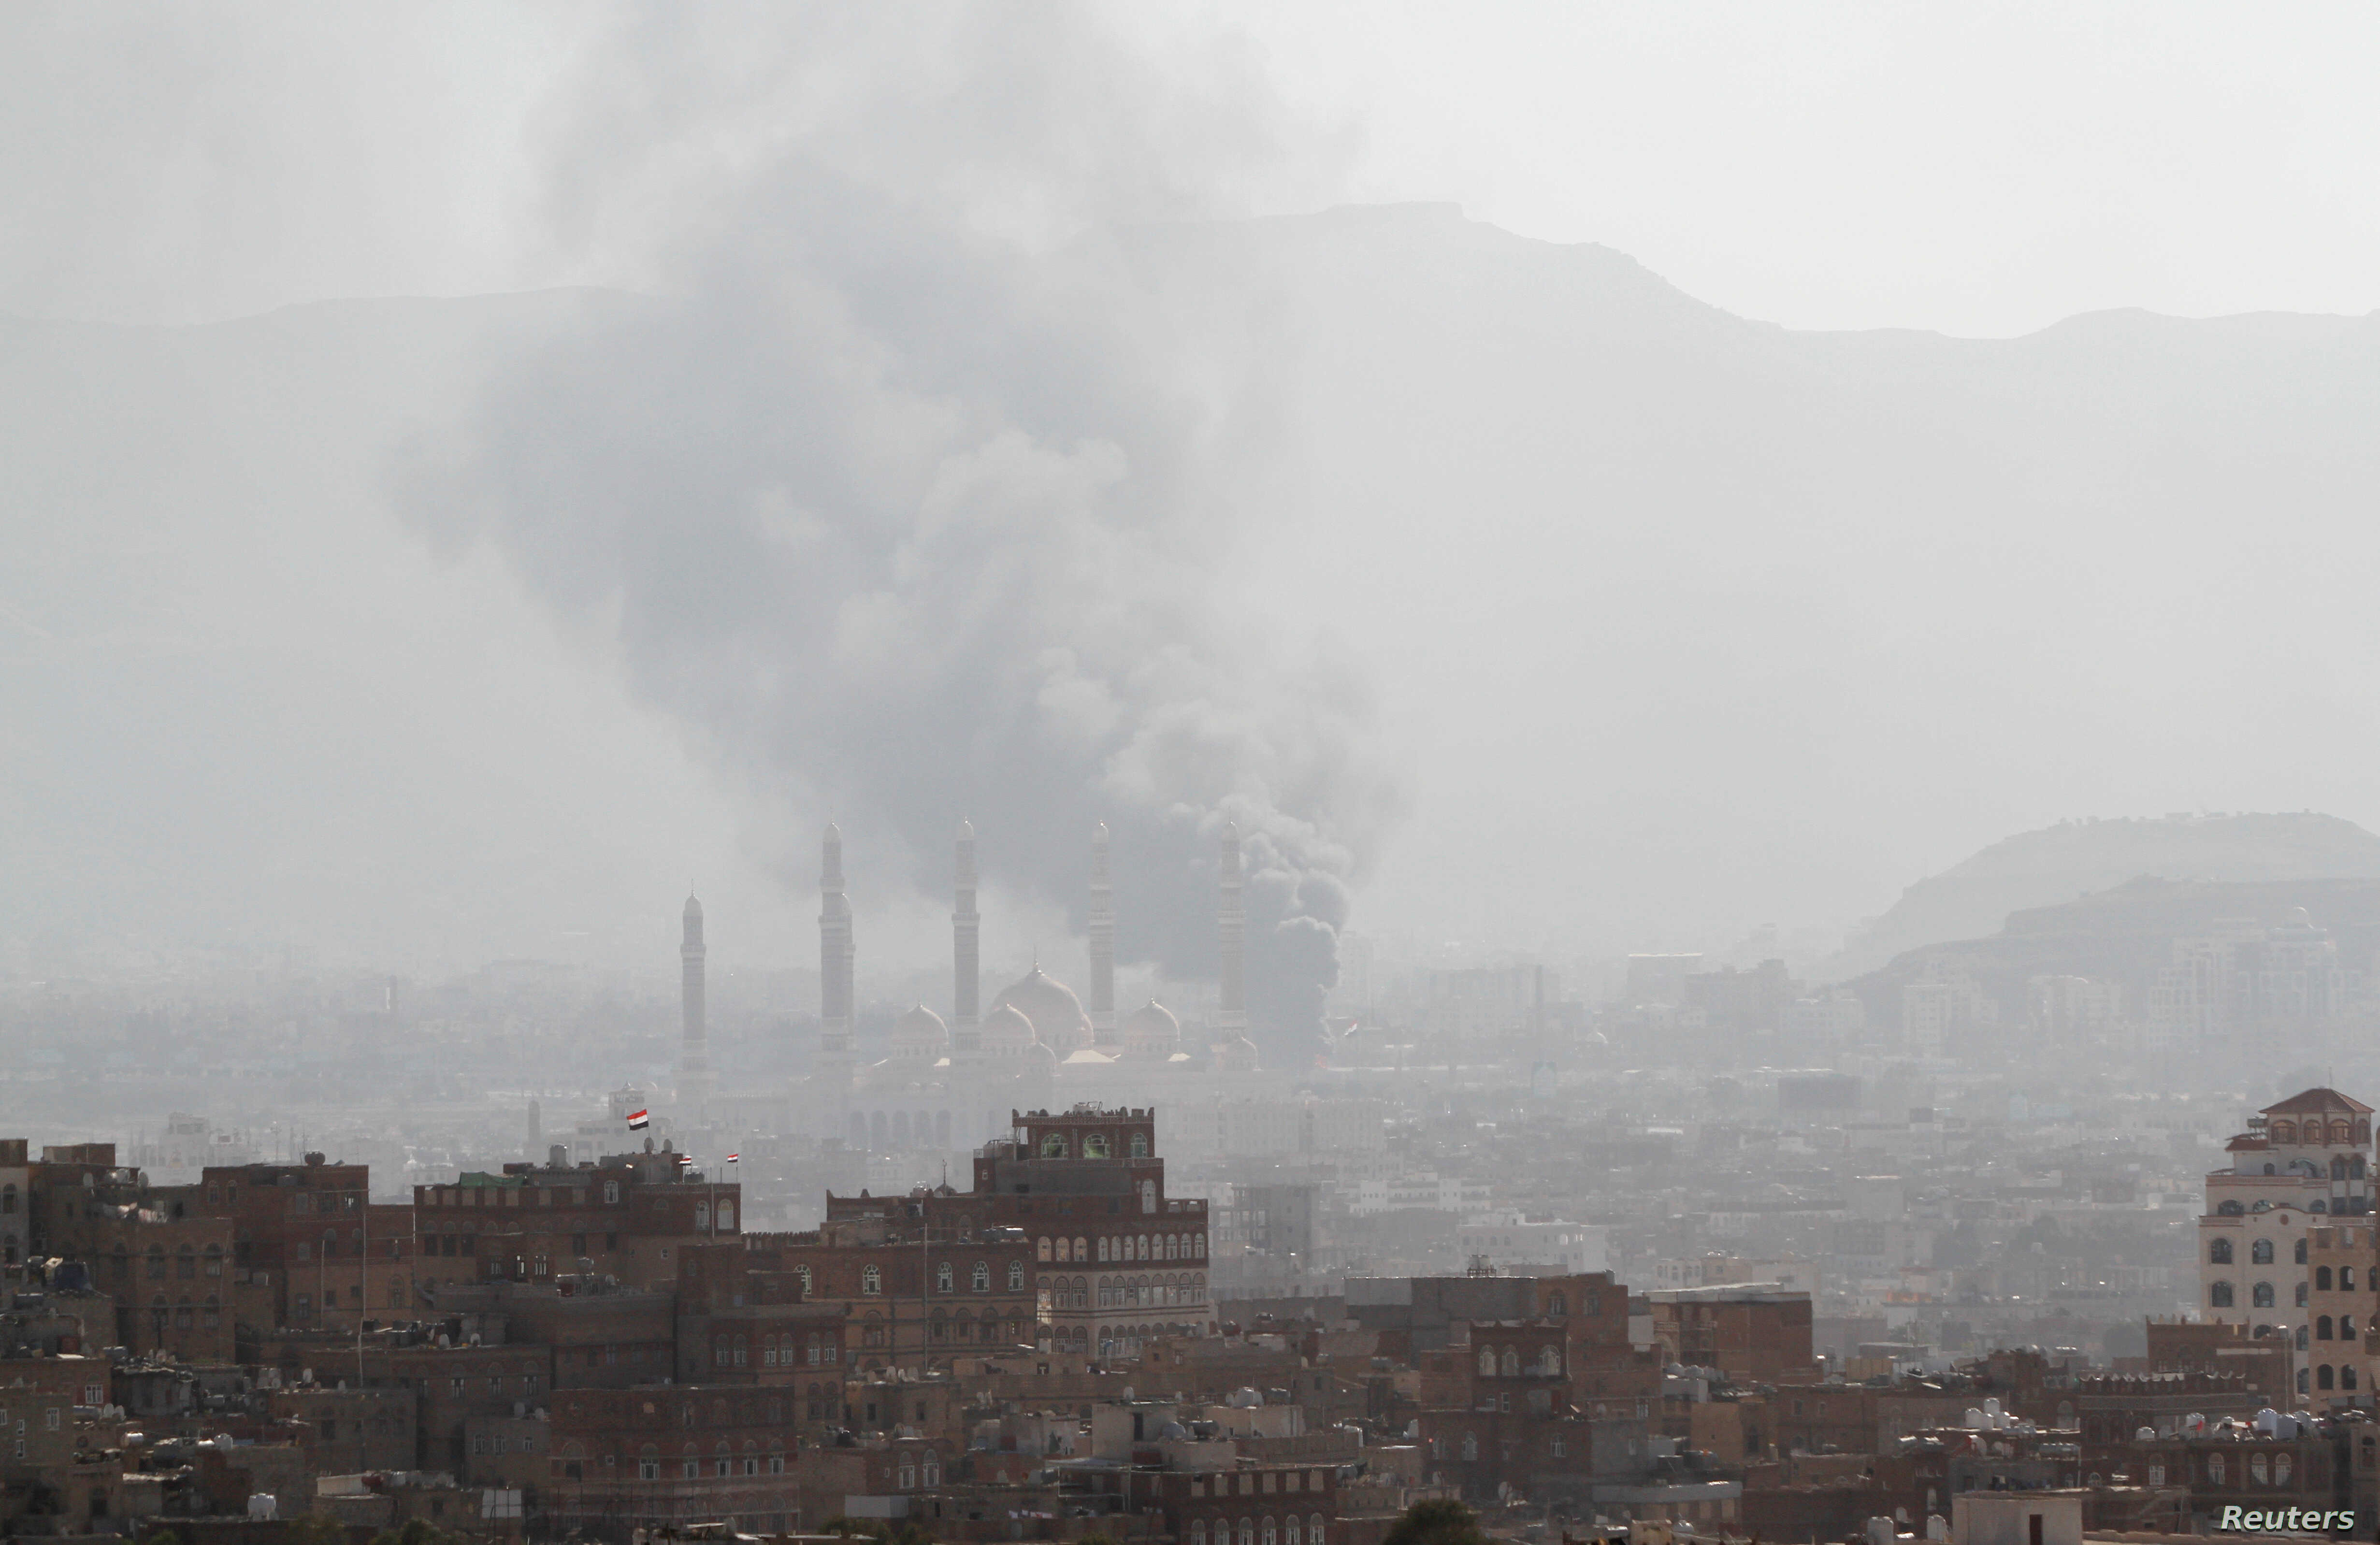 Smoke rises during a battle between forces loyal to former Yemeni President Ali Abdullah Saleh and Houthi fighters, in Sana'a, Yemen, Dec. 2, 2017.